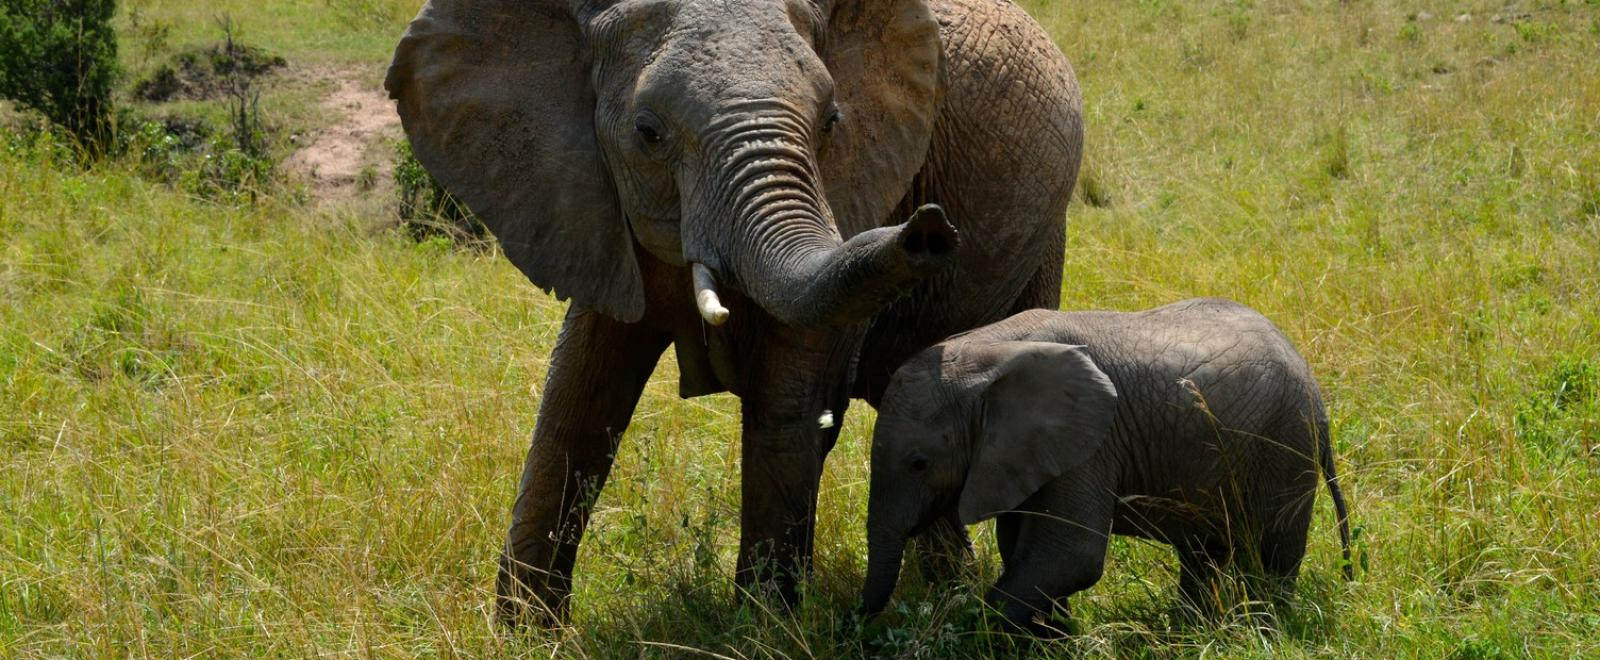 Elephant with her baby in the African bush